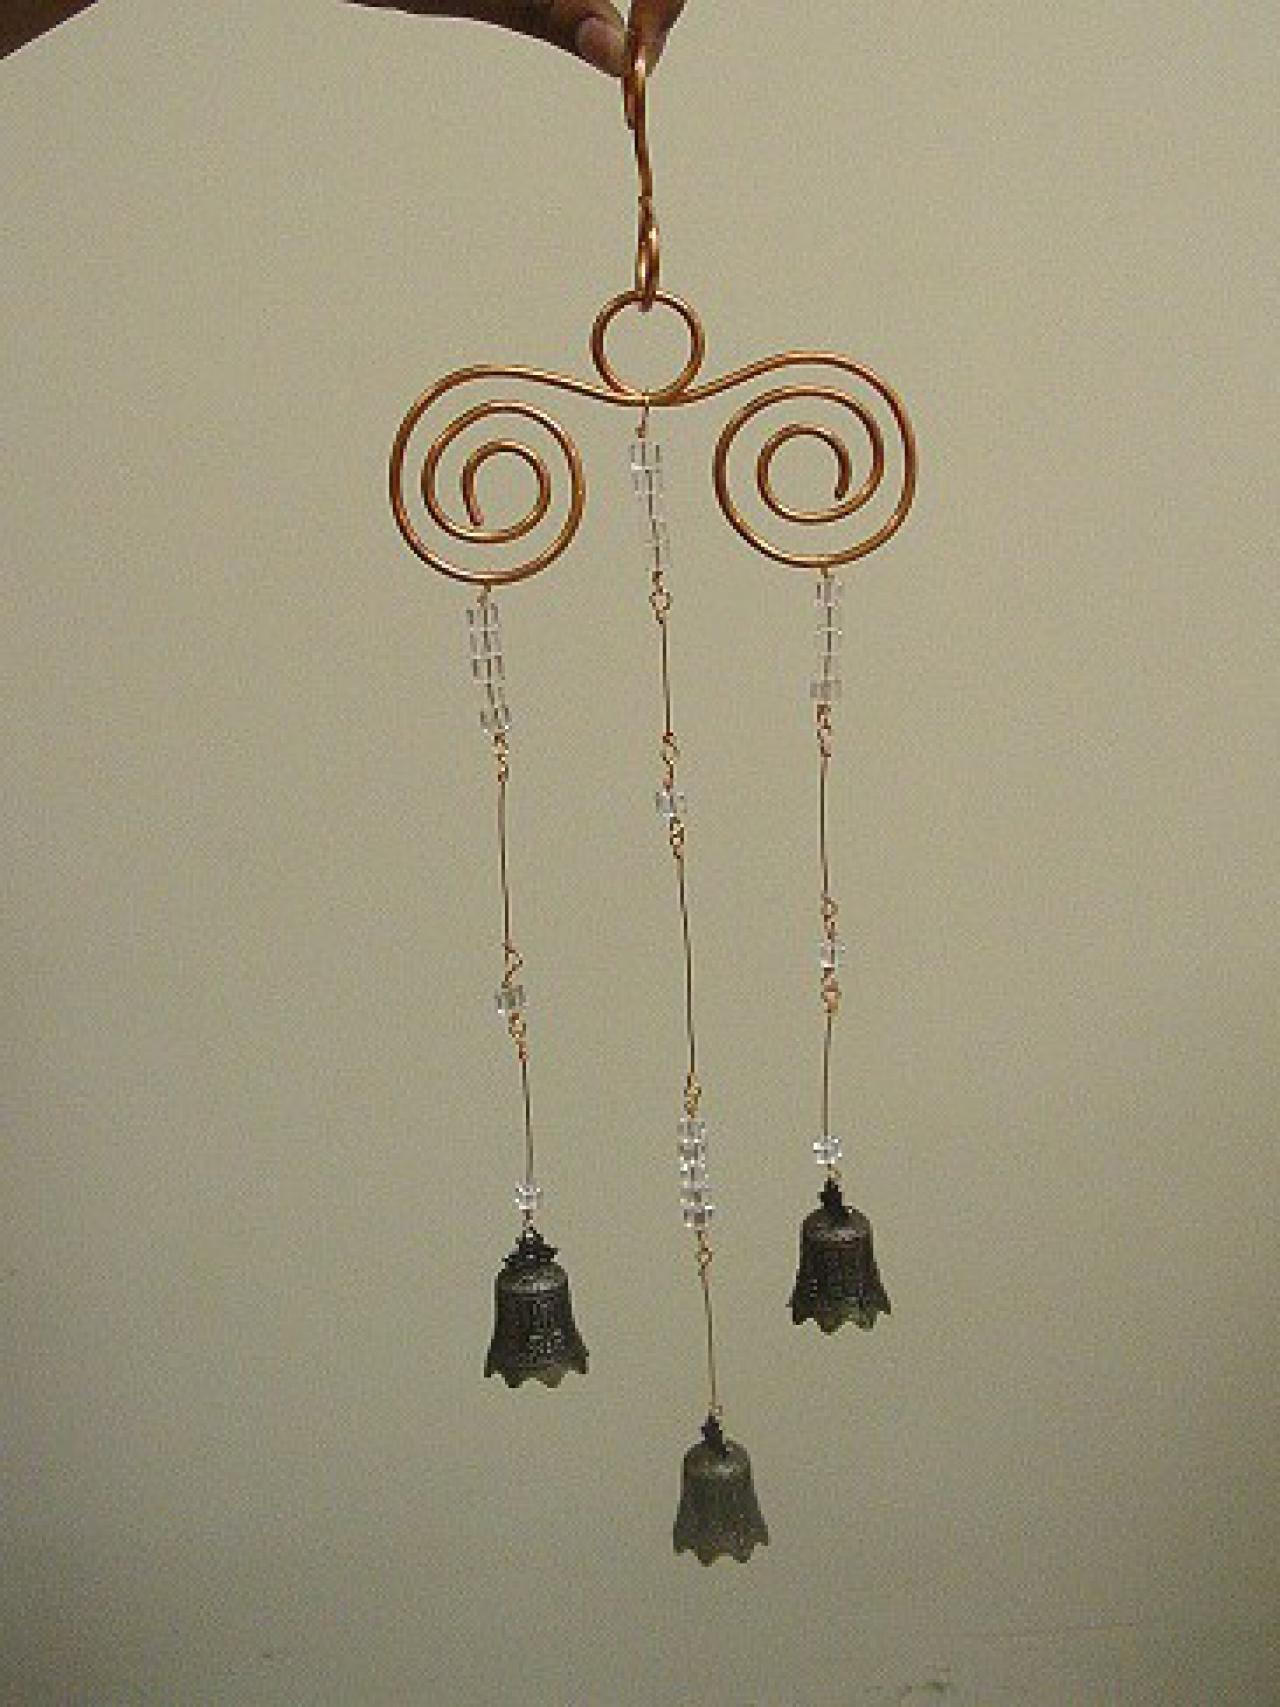 10 homemade wind chime ideas and projects page 5 of 11 for Homemade chimes